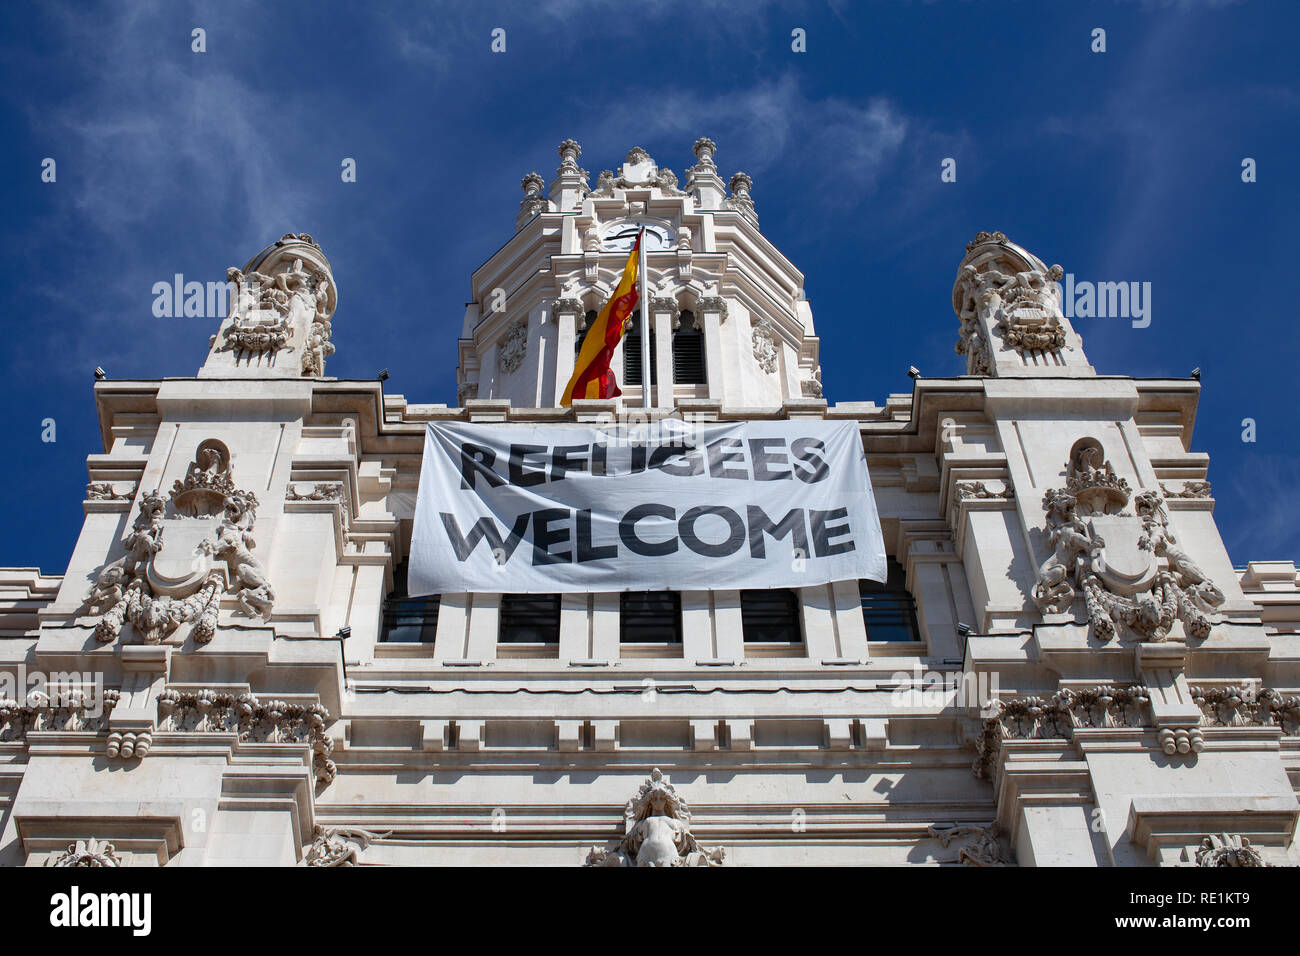 Refugees Welcome, political and social Statement Stock Photo